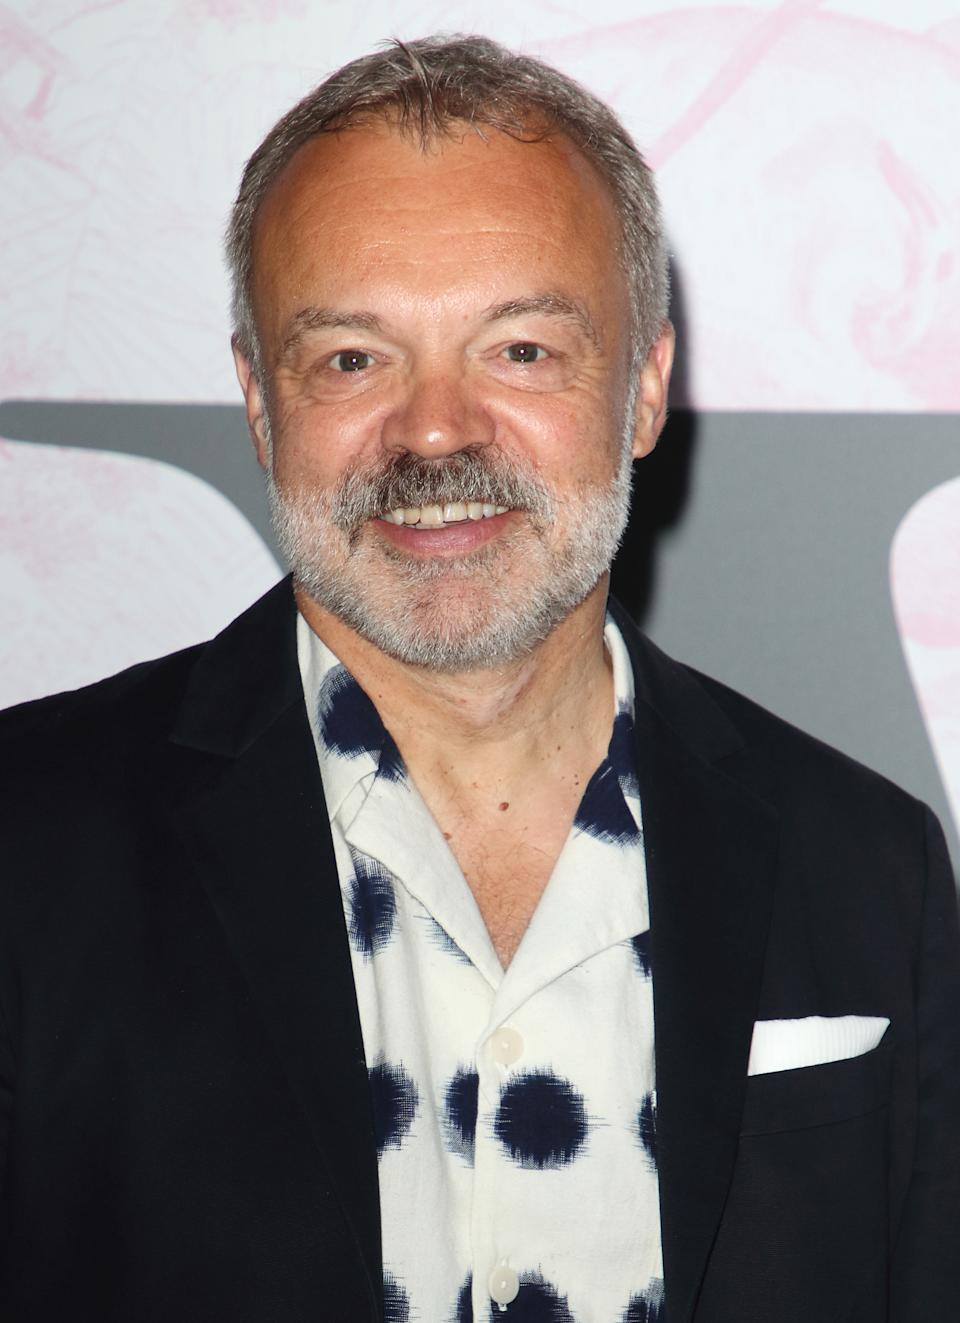 LONDON, UNITED KINGDOM - 2019/06/19: Graham Norton at The Victoria and Albert Museum Summer Party - in partnership with Dior - at the John Madejski Garden, Victoria and Albert Museum, Kensington. (Photo by Keith Mayhew/SOPA Images/LightRocket via Getty Images)